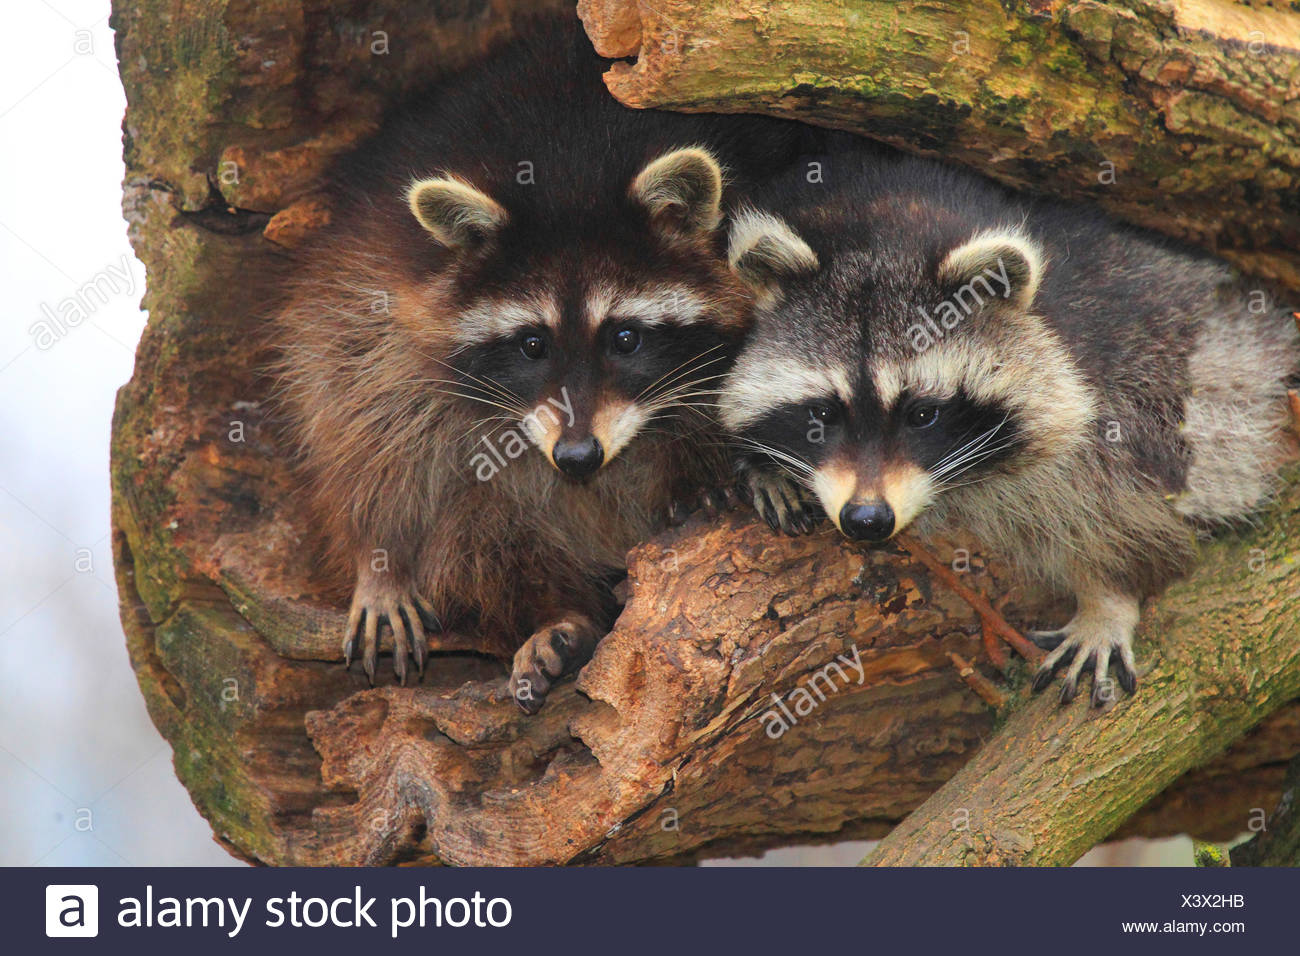 common raccoon (Procyon lotor), two raccoons sit on an old tree, Germany - Stock Image